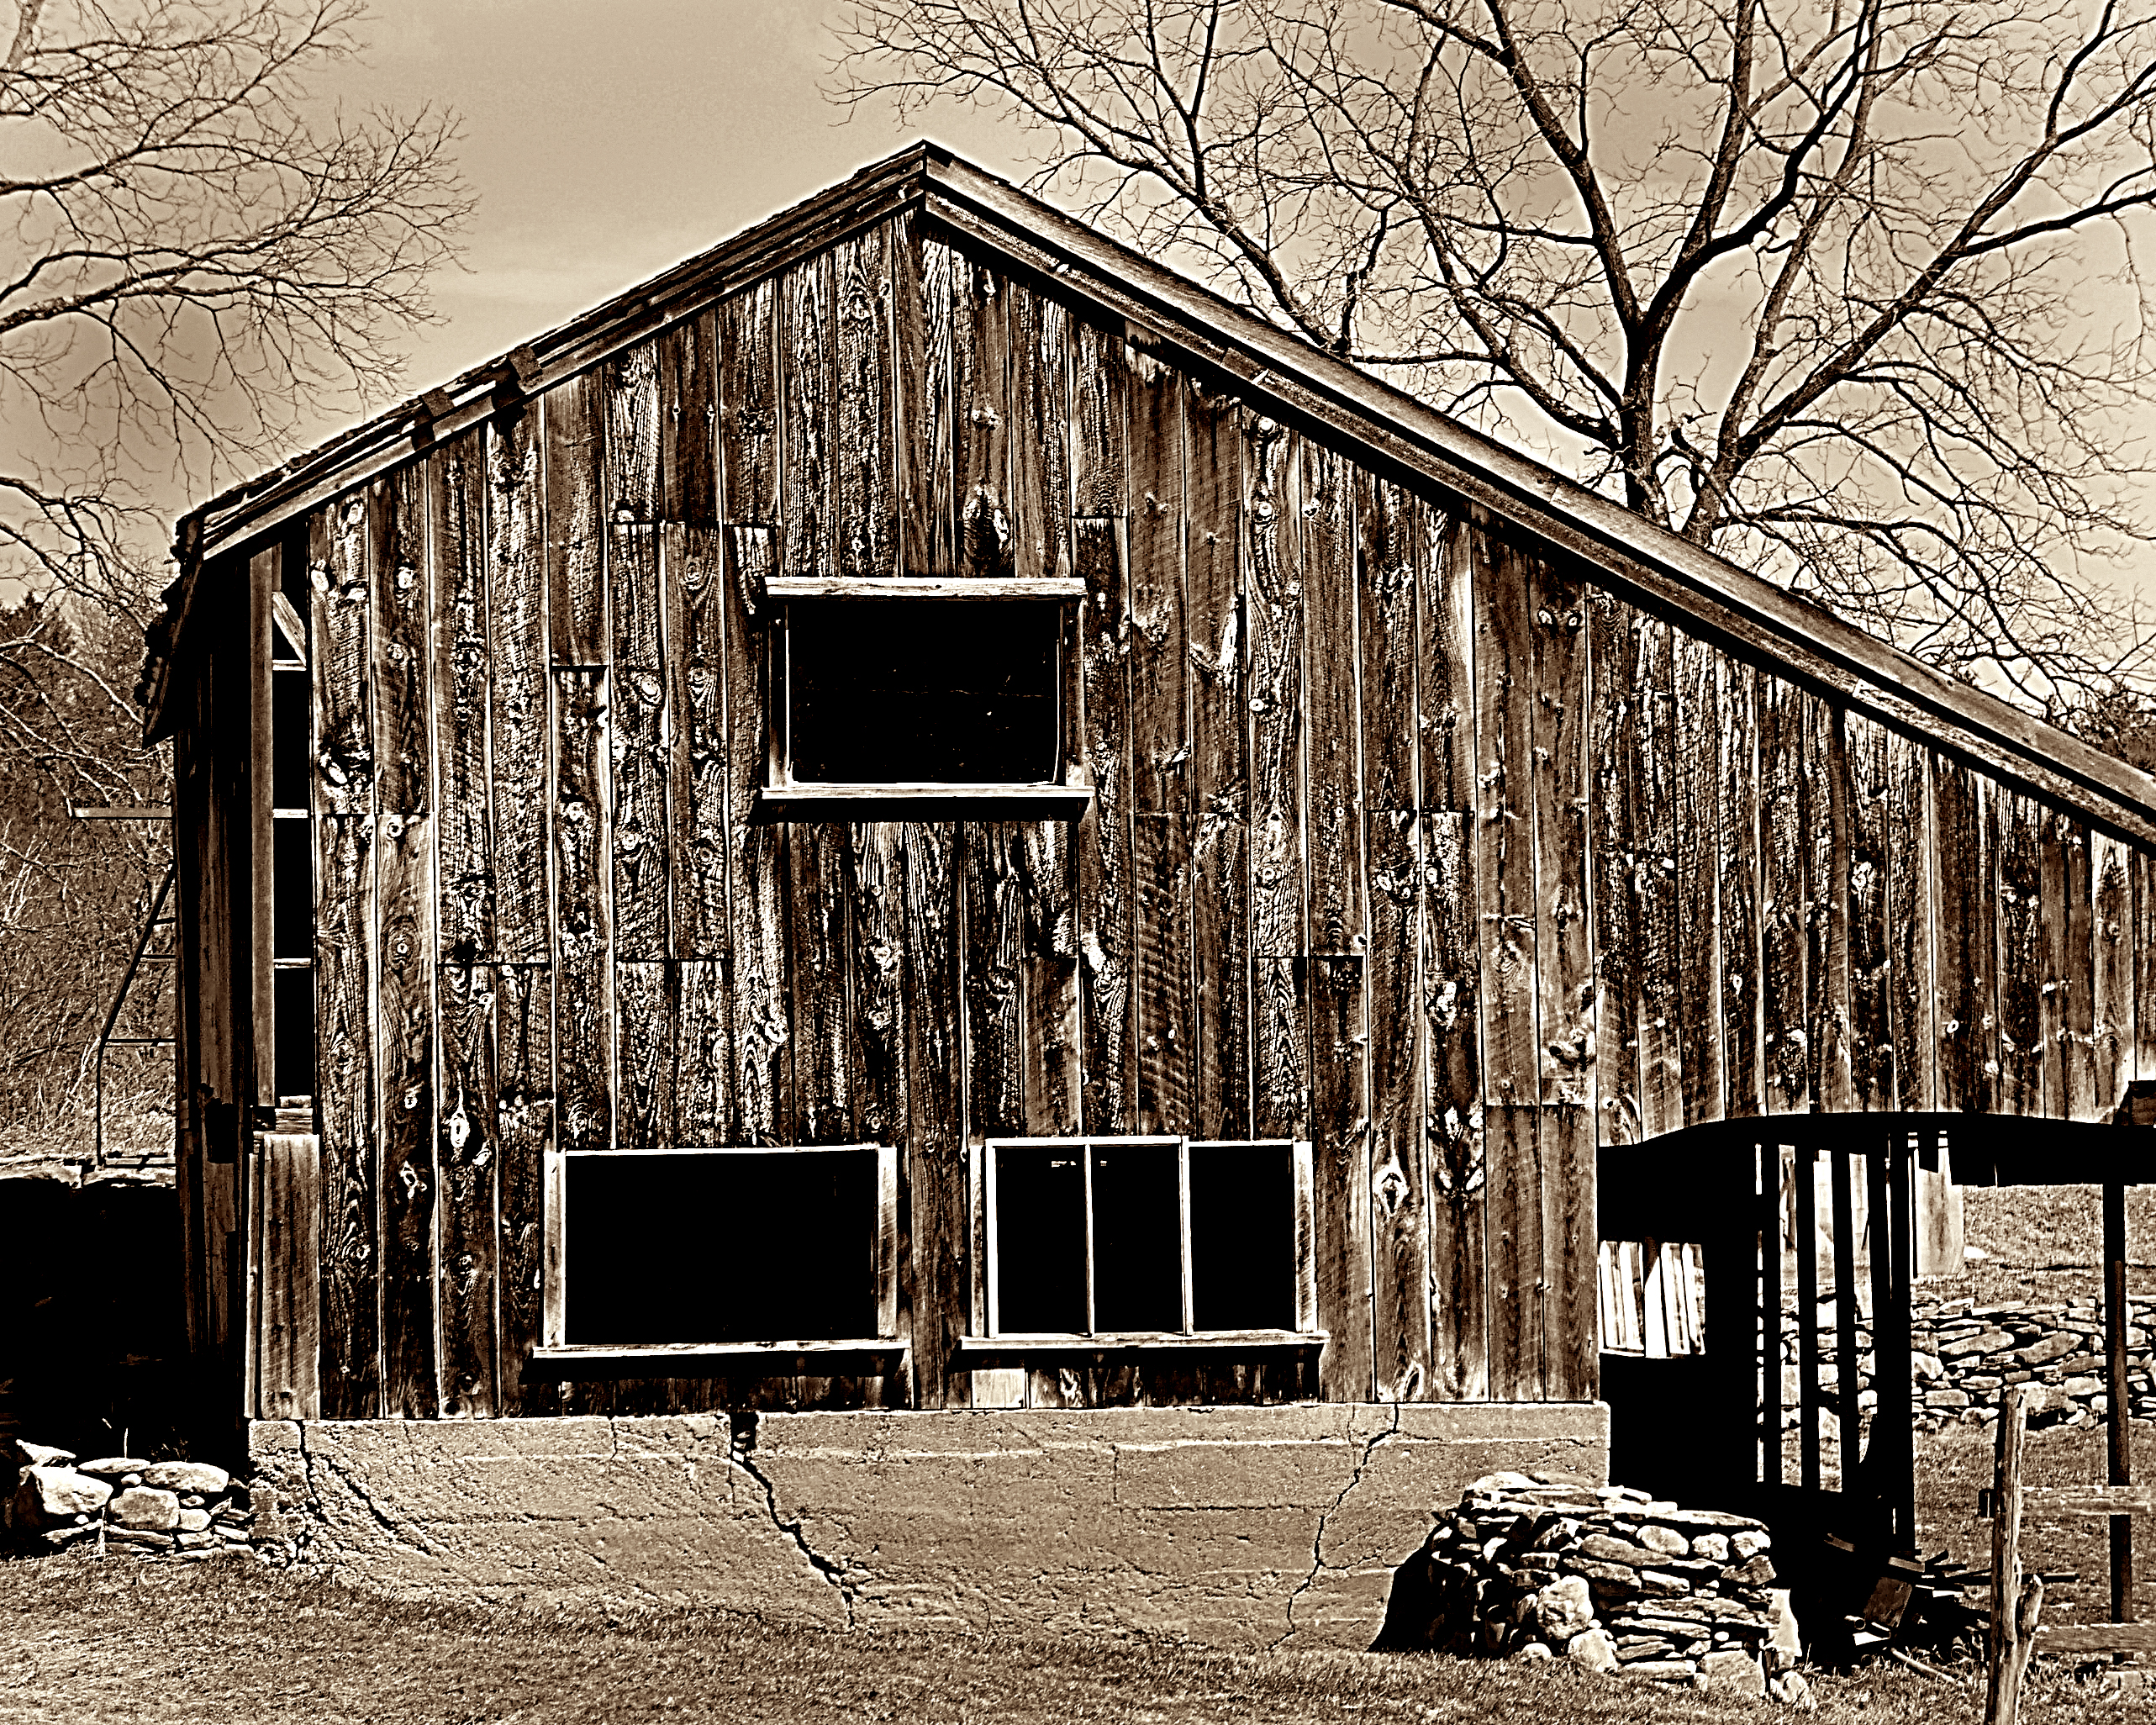 """Figure 1 - """"Old New England Barn in Spring, Stow, MA,"""" (c) copyright DEWolf 2013/"""